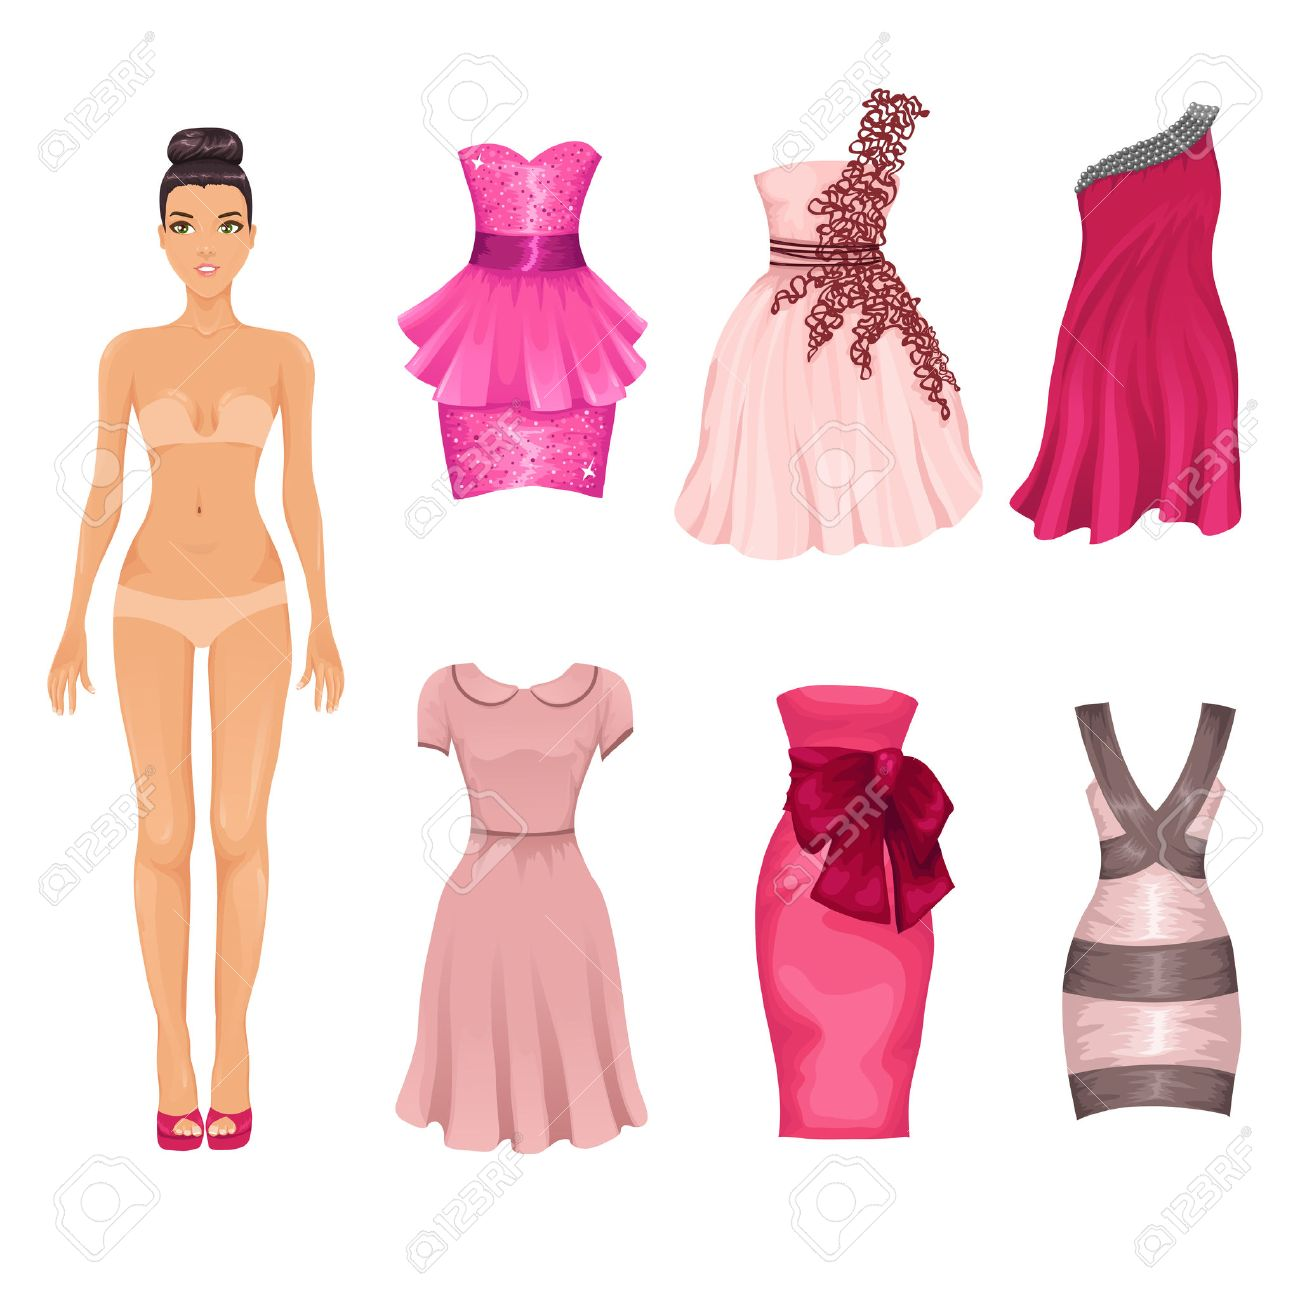 Dress-up Doll With An Assortment Of Pink Prom And Cocktail Dresses ...